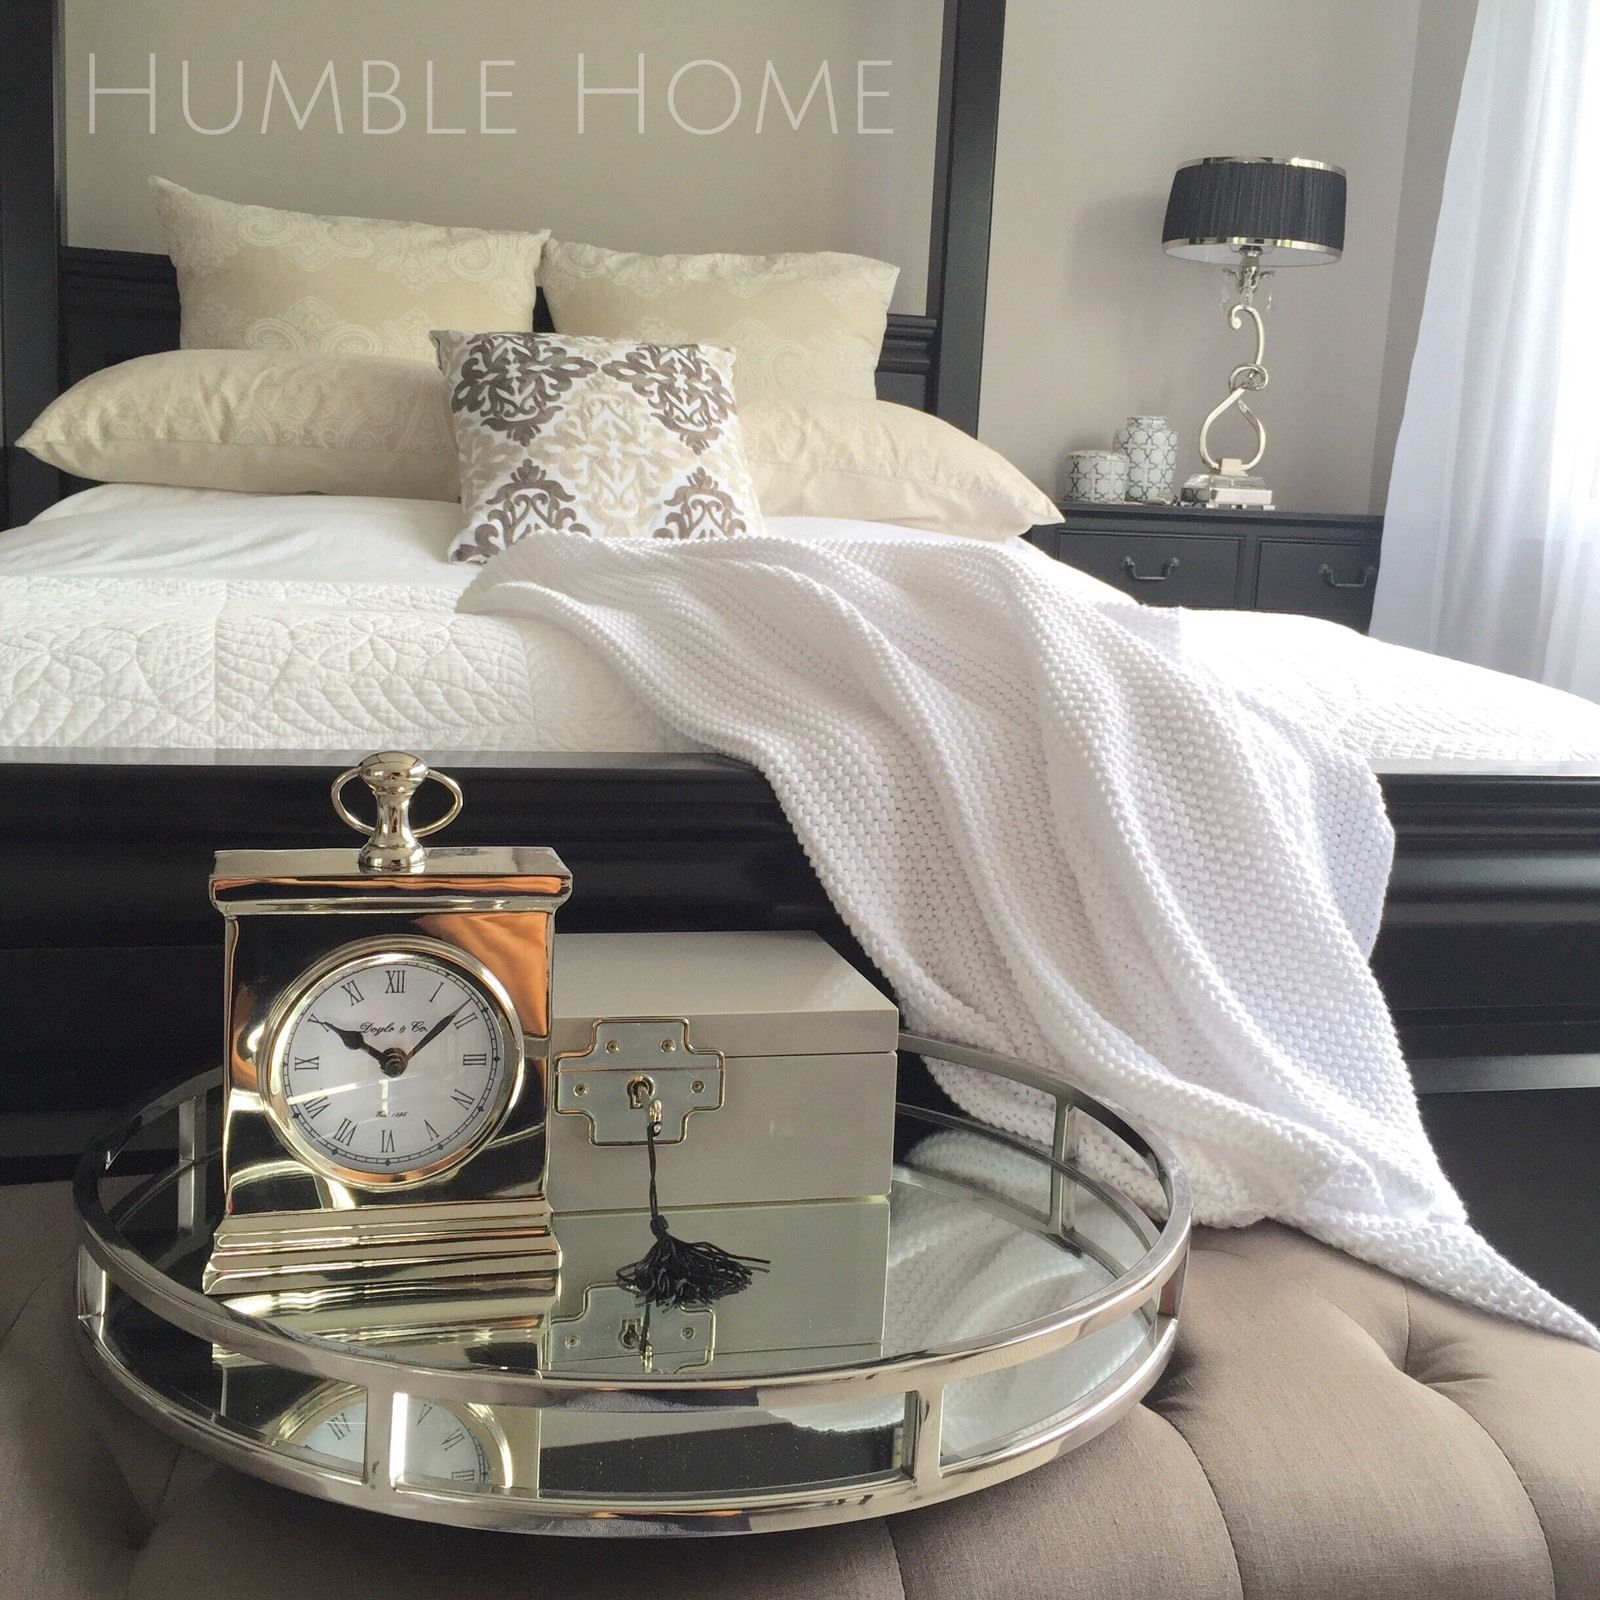 Bedroom Coffee Table: STUNNING Round Silver Tray/with Mirror/Handles/Coffee